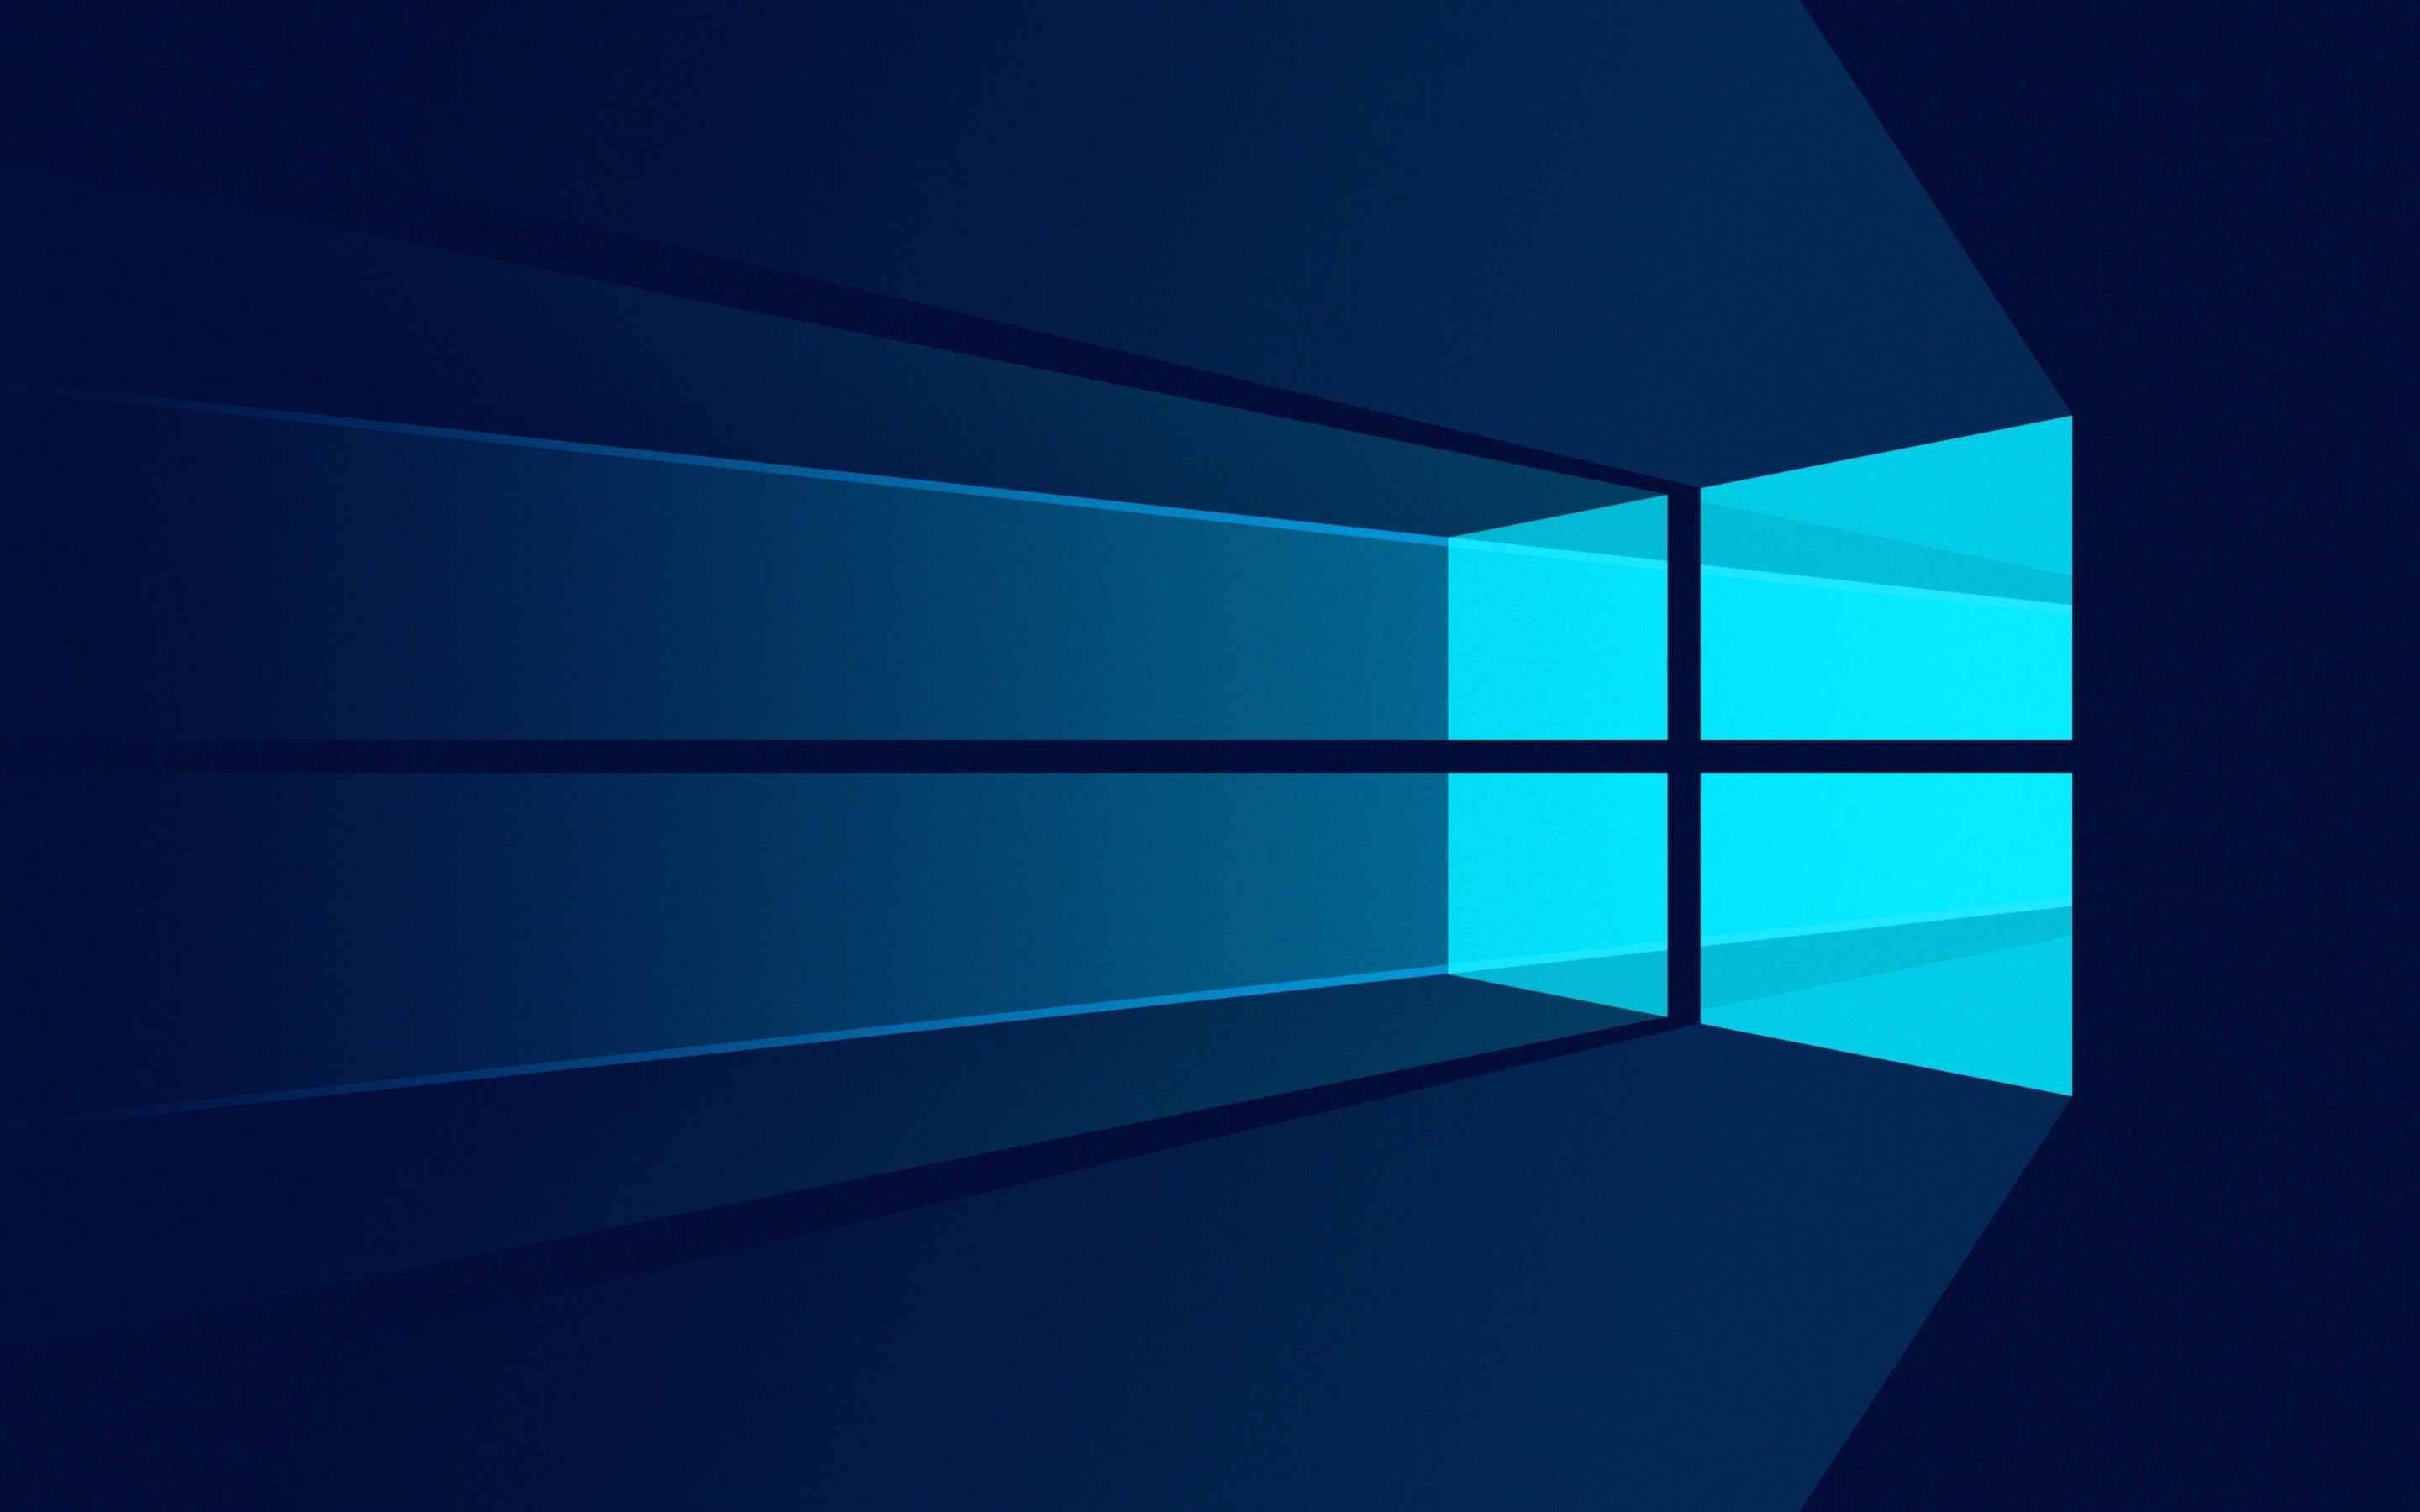 Download Windows 10 Flat HD wallpaper for 2880 x 1800 - HDwallpapers ...: https://www.hdwallpapers.net/preview/windows-10-flat-wallpaper-for...